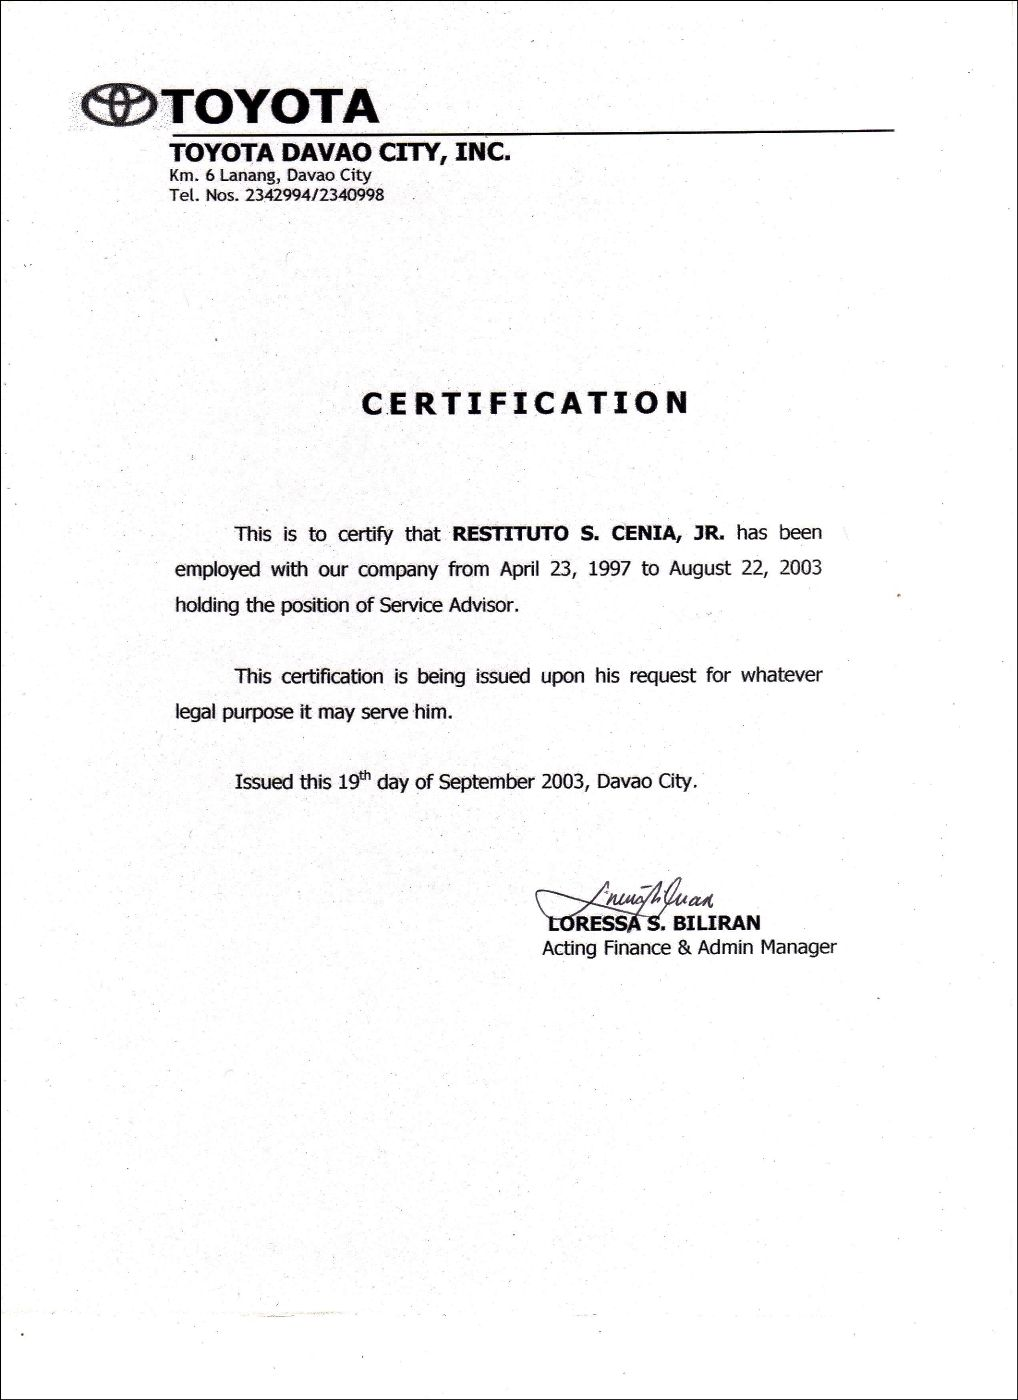 Employment certificate sample best templates pinterest employment certificate sample best templates pinterest employmentyota davao employmentg xflitez Choice Image